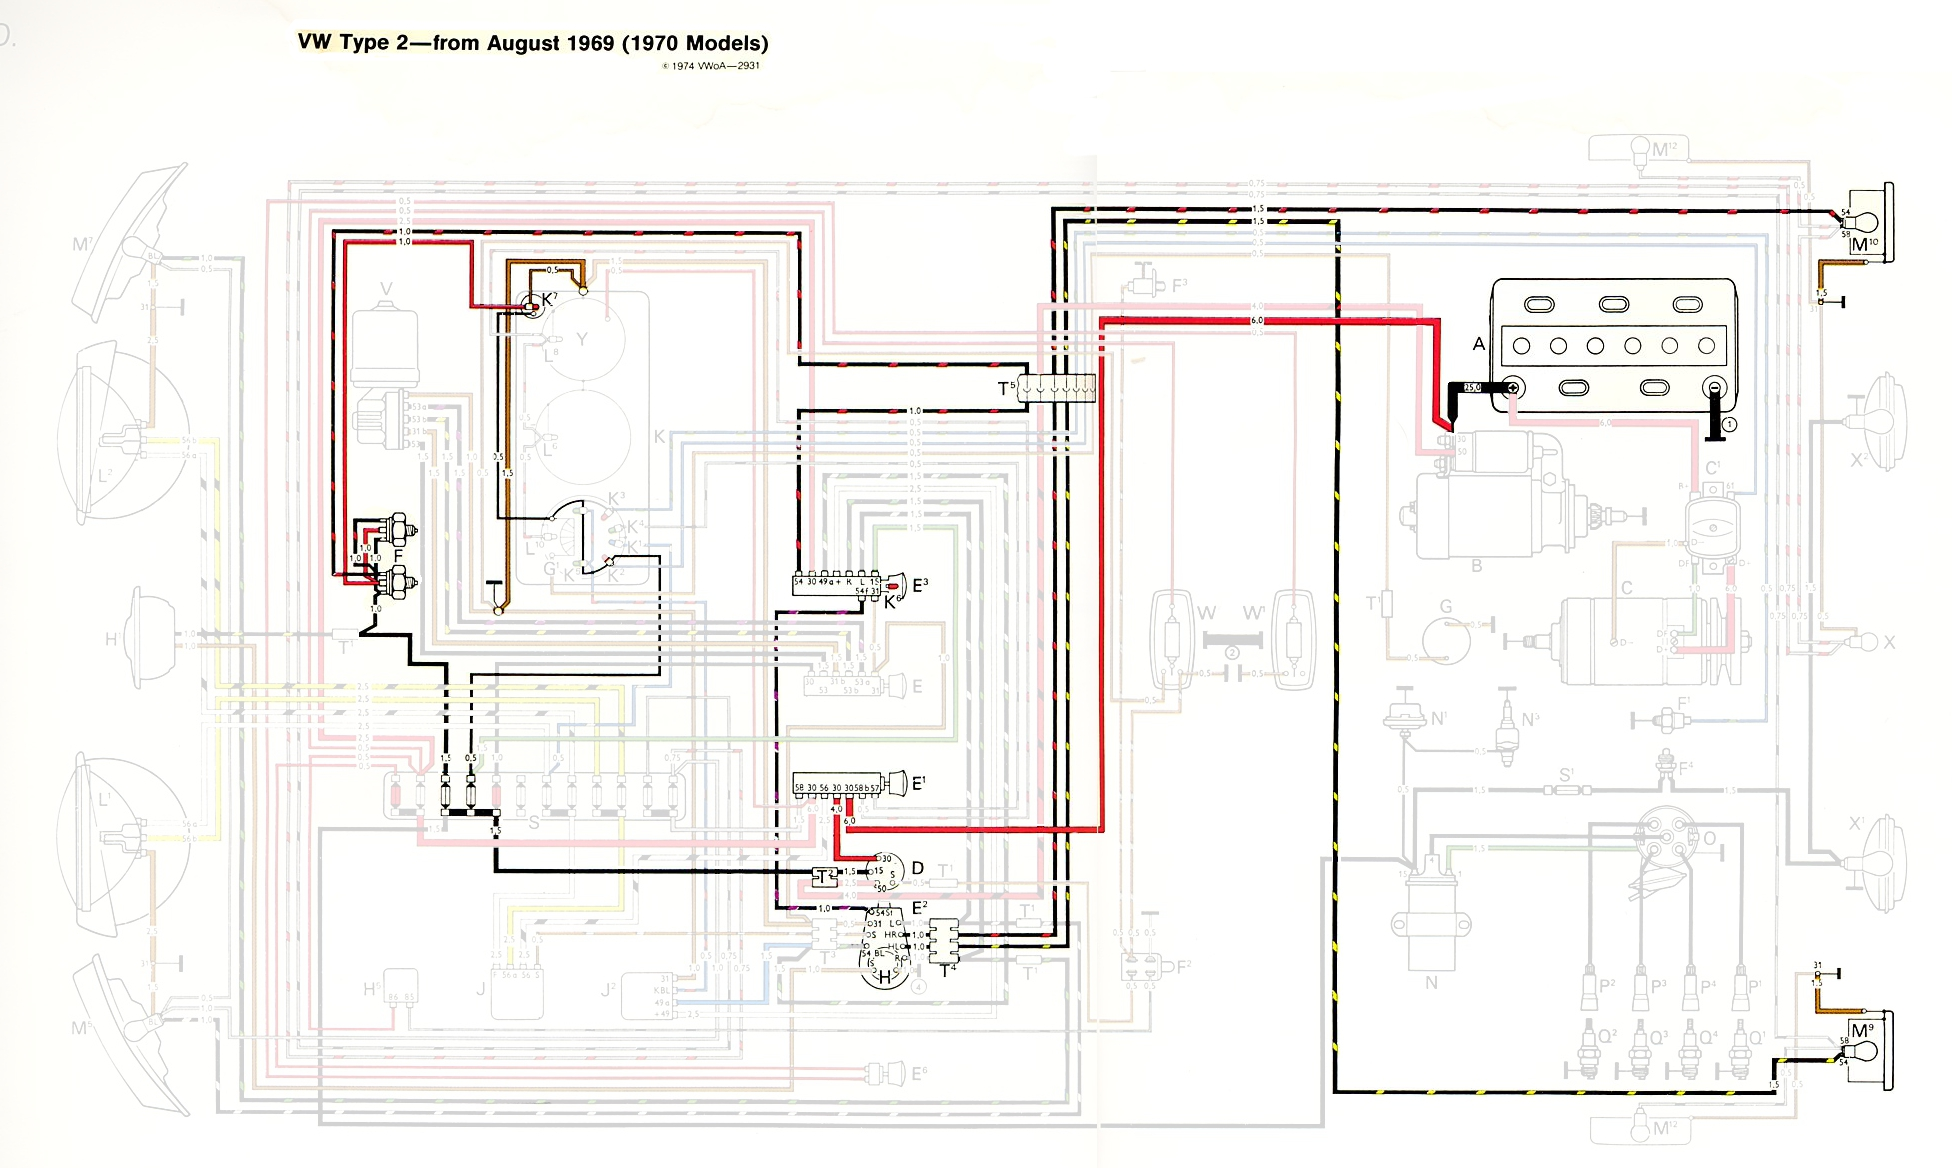 volkswagen type 2 wiring harness wiring diagram libraries thesamba com type 2 wiring diagrams volkswagen type 2 wiring harness